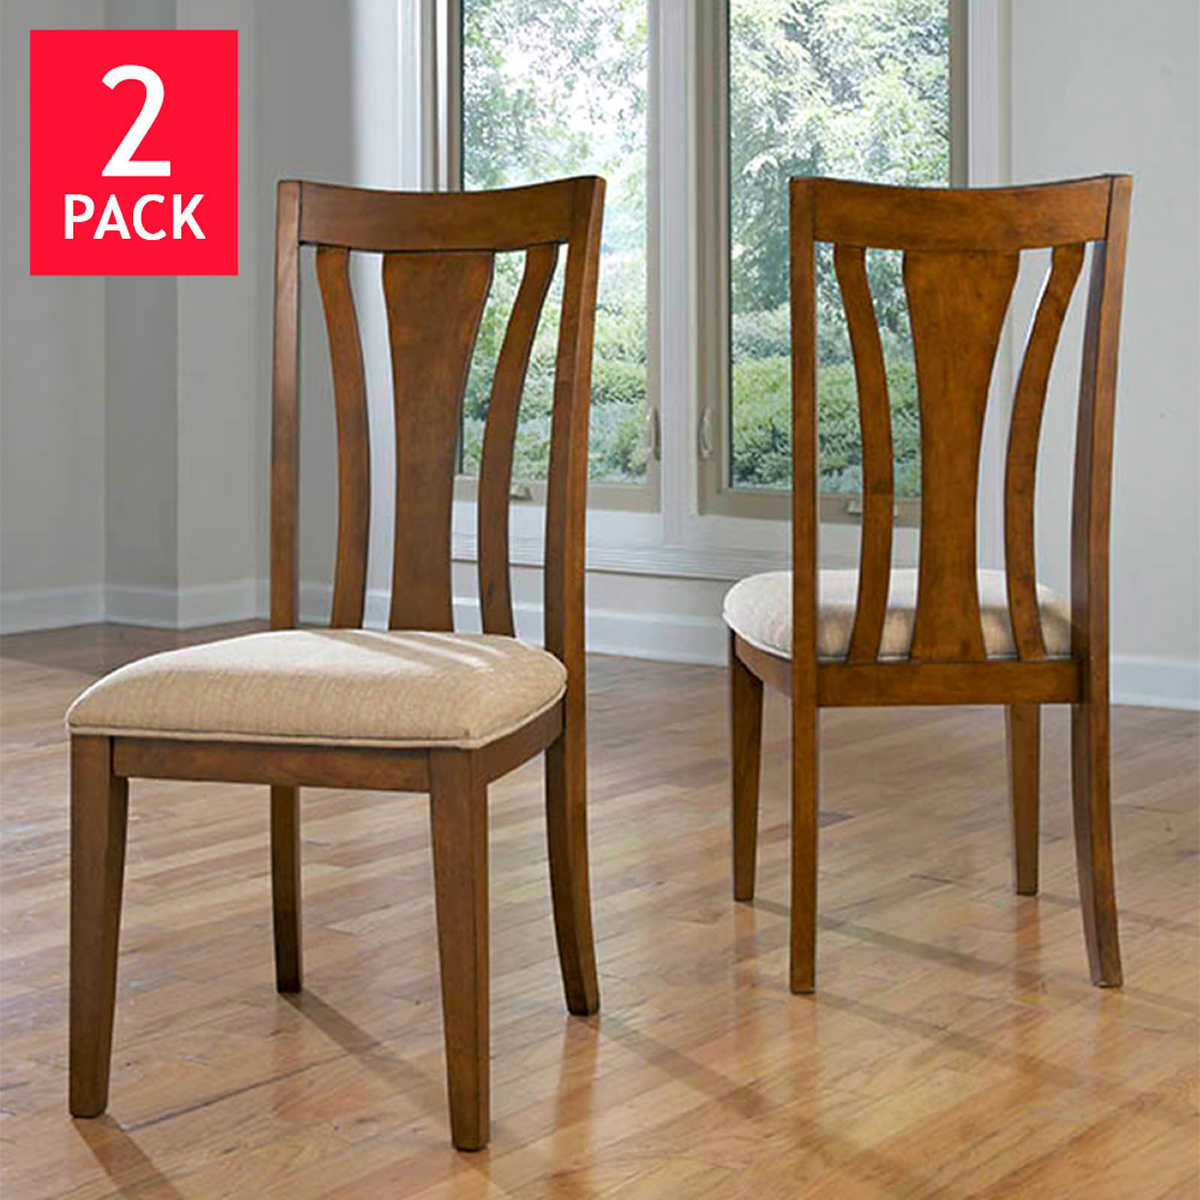 A Folding Dining Table Side Viewfold Up Room And Chairs